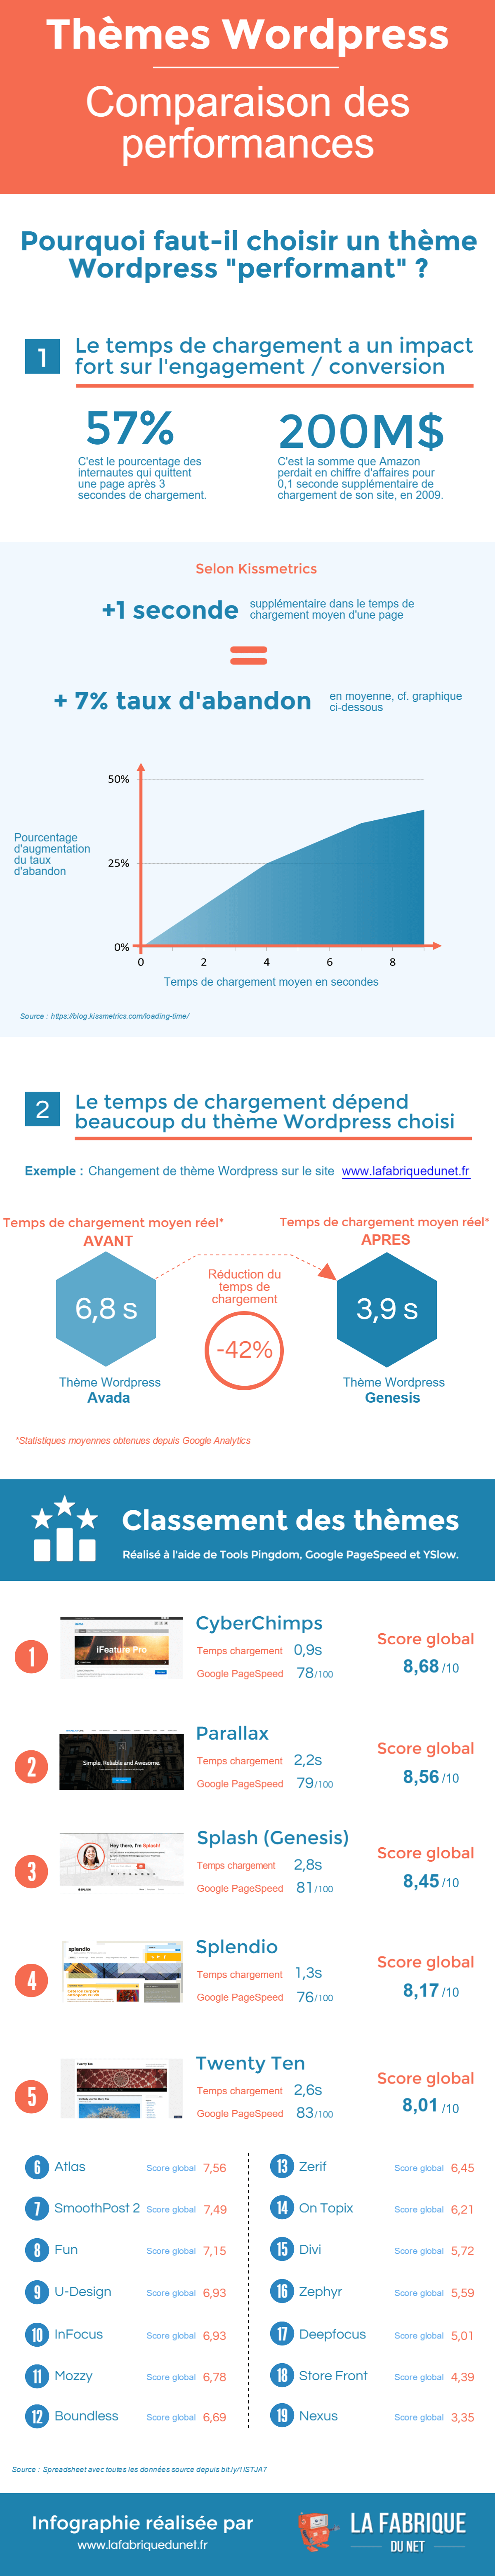 infographie-theme-wordpress-comparaison-performances